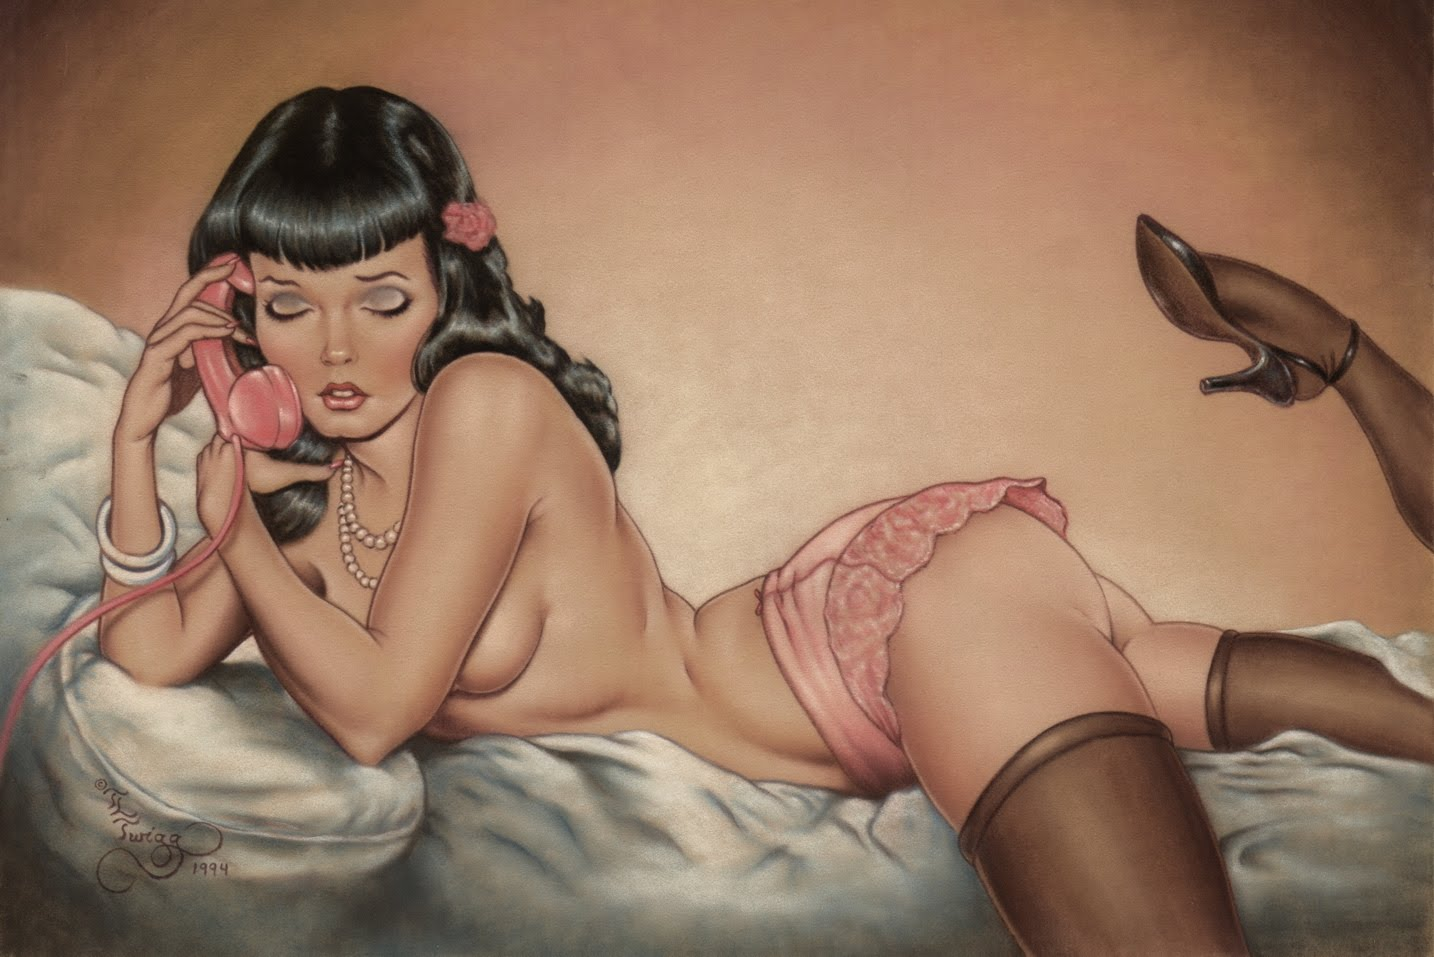 BETTIE PAGE'S SECRET LIFE AS AN UNDERCOVER OPERATIVE IN 1950S HOLLYWOOD HAS BEEN DECLASSIFIED!